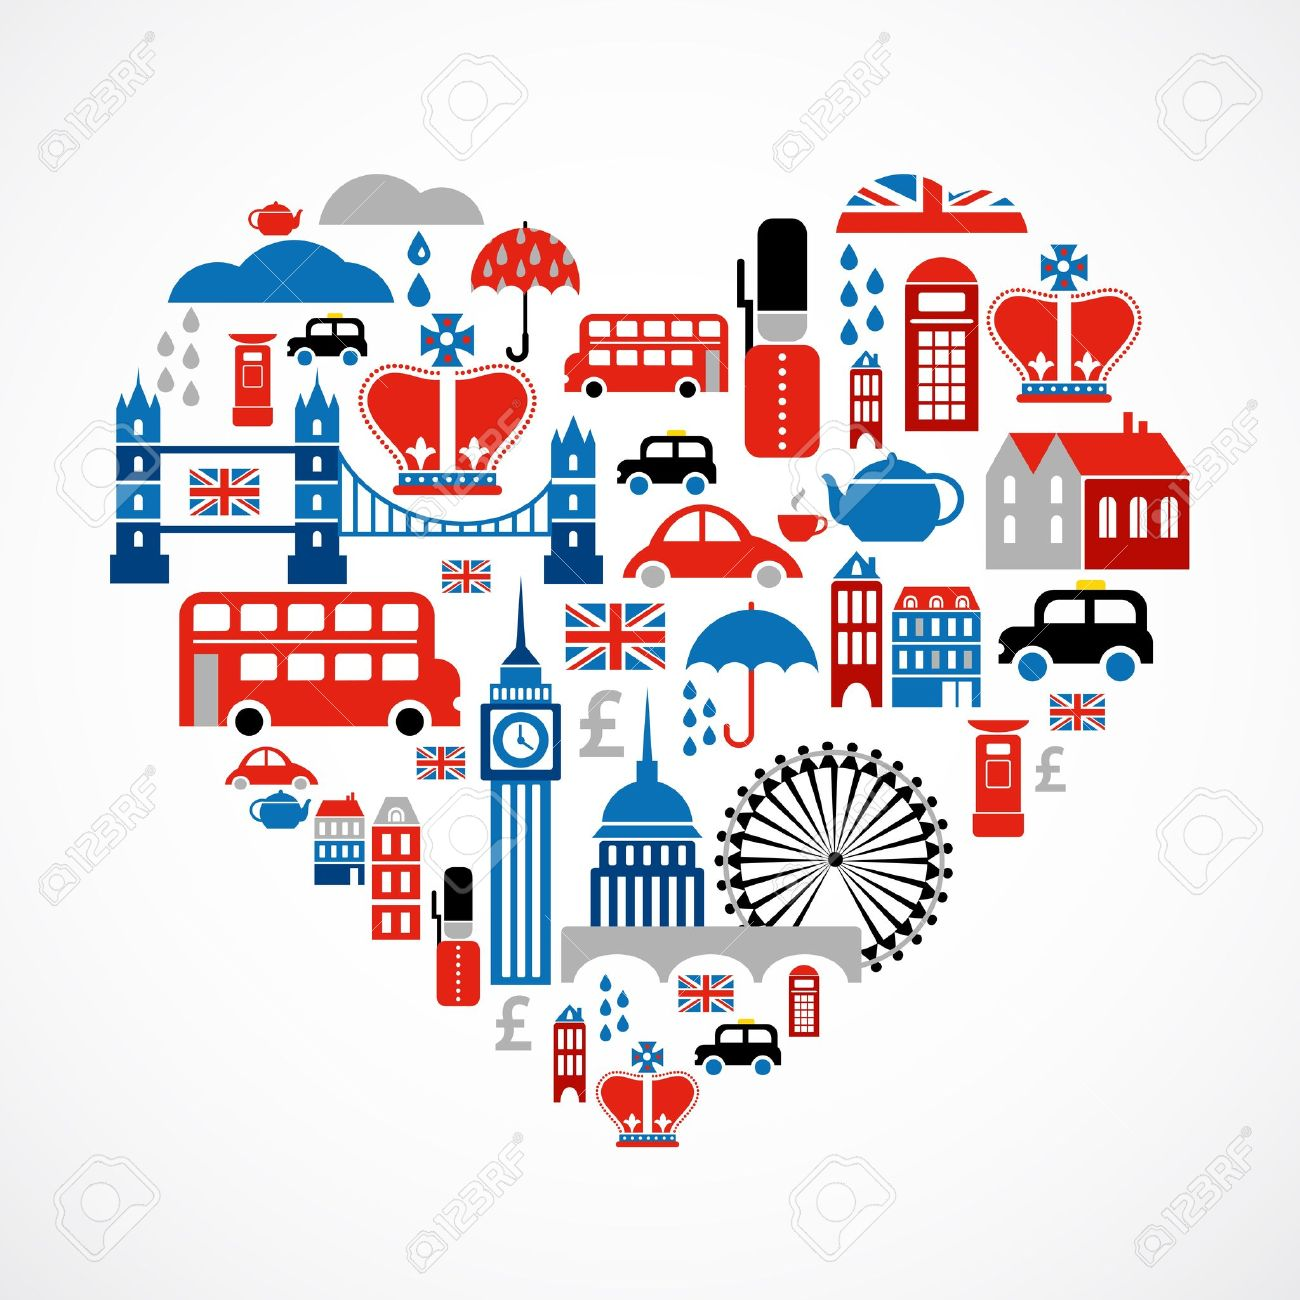 London love - heart with many vector icons Stock Vector - 13873886